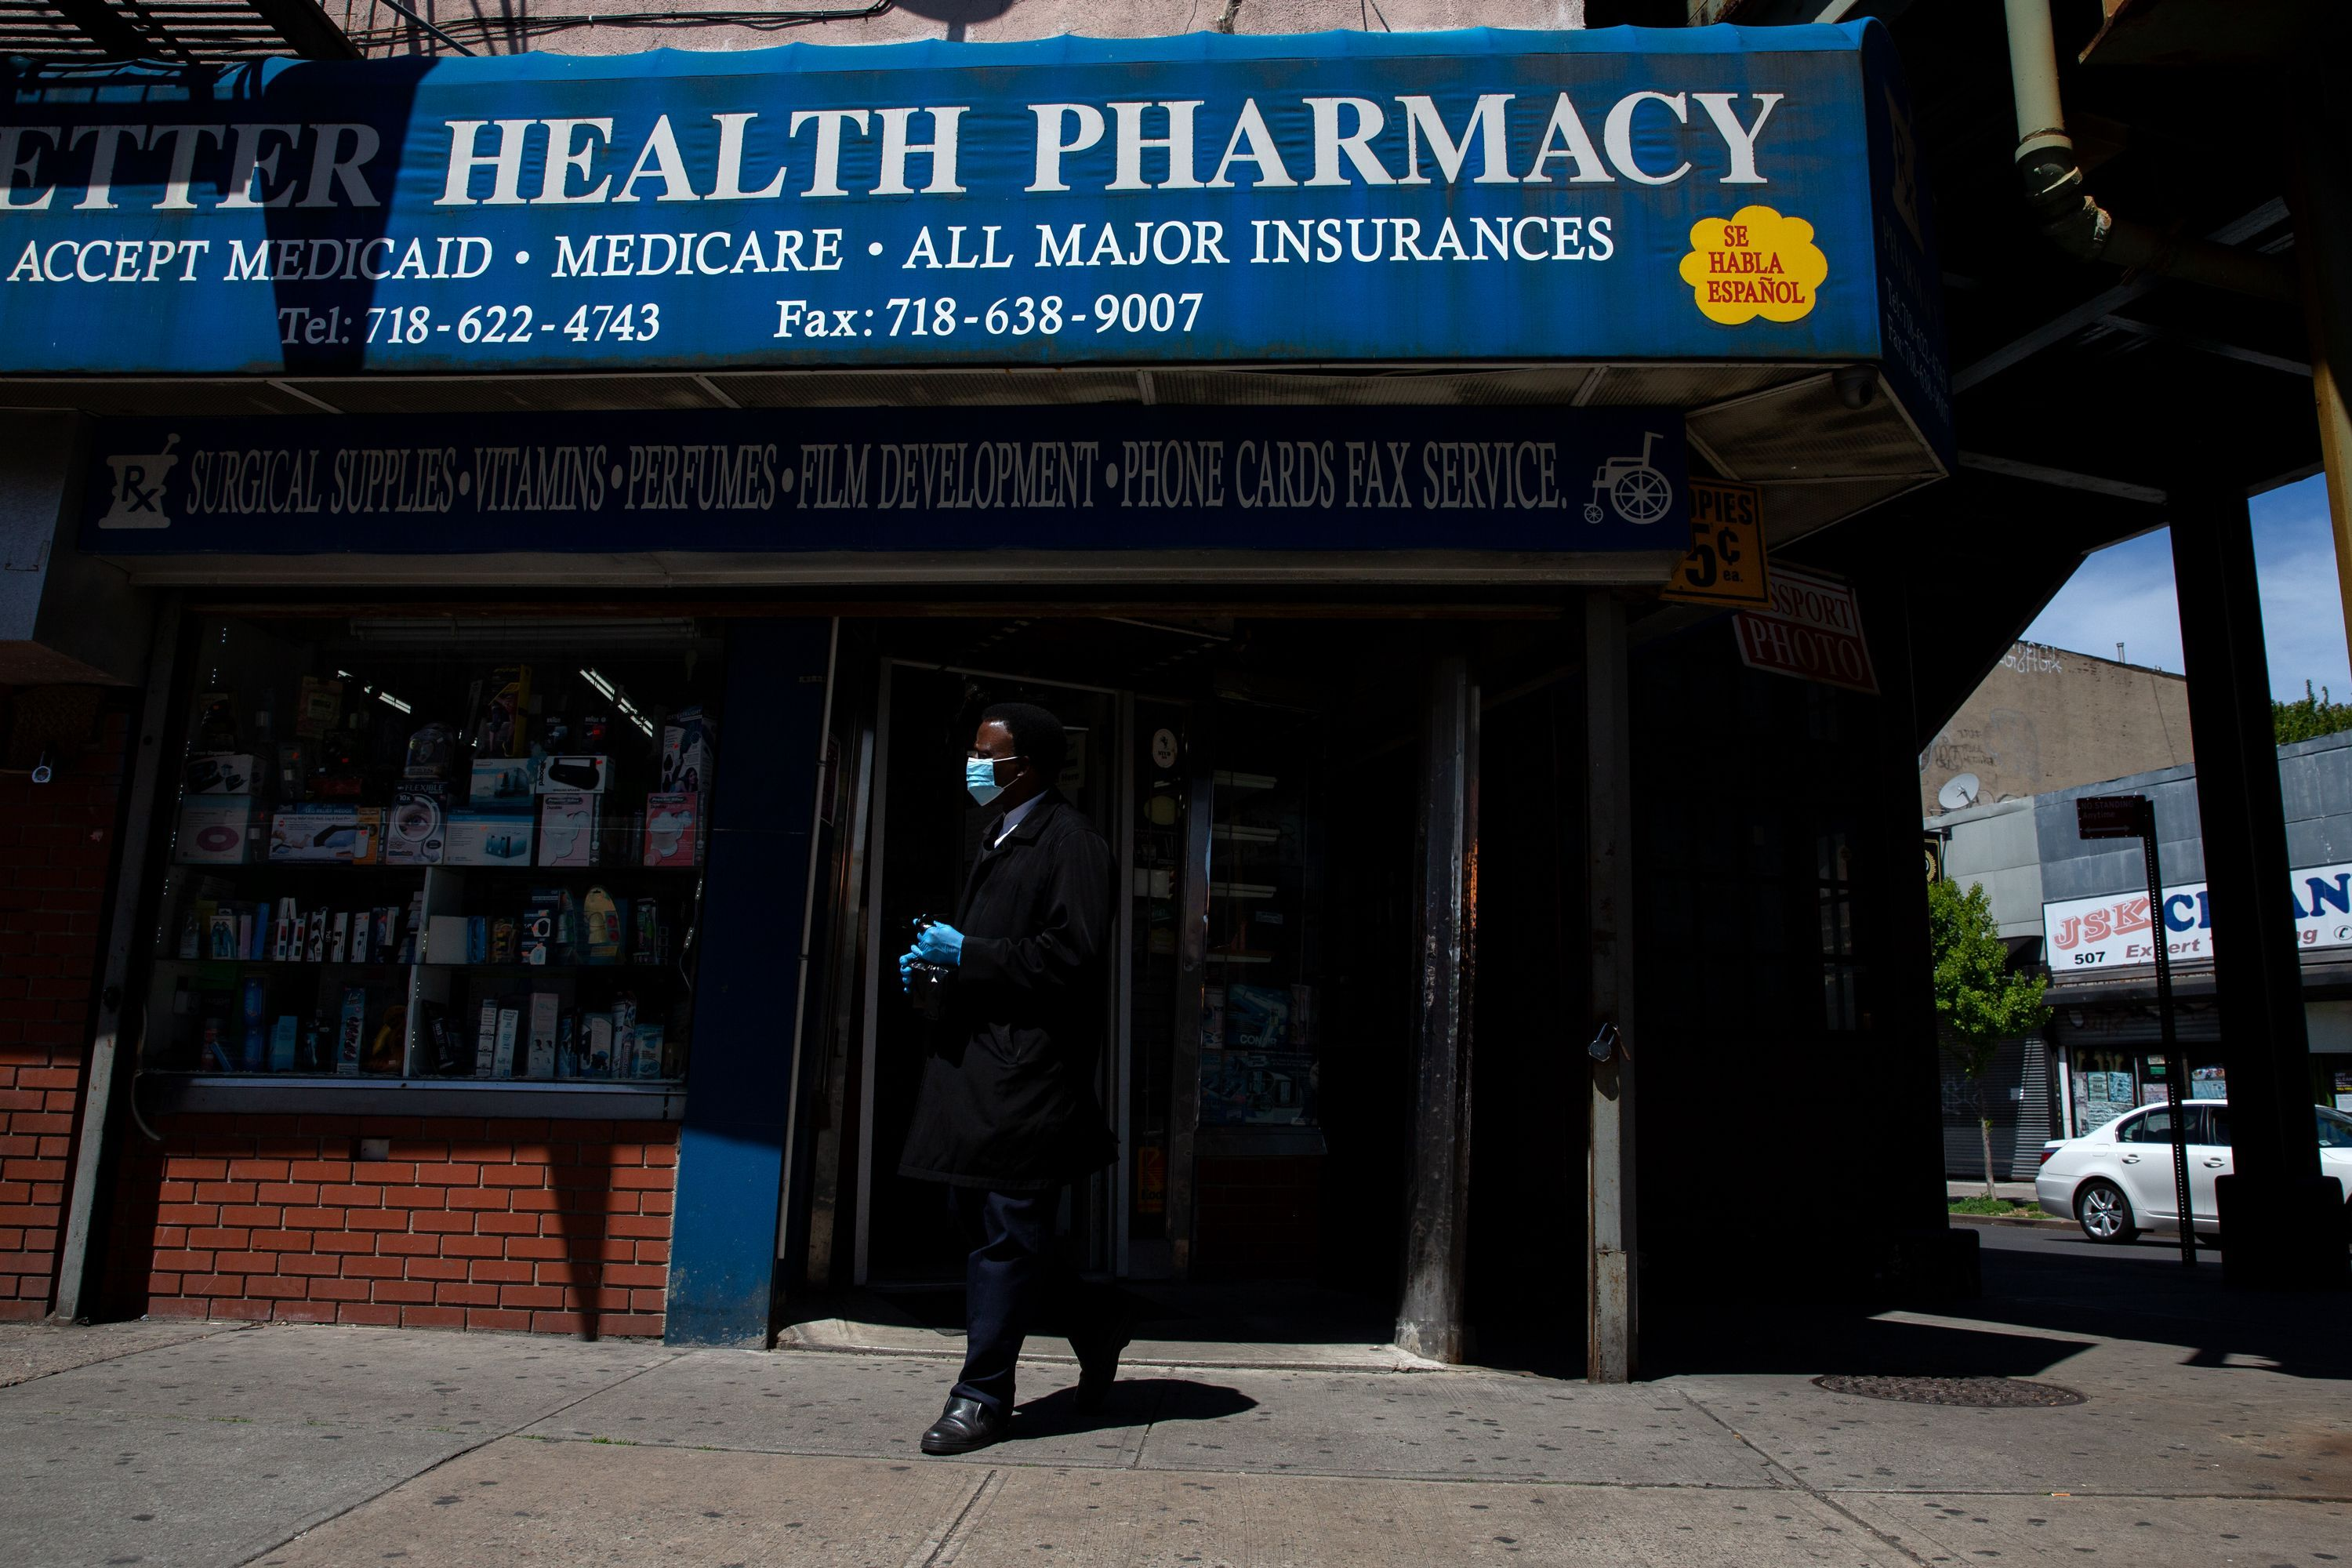 A Bed-Stuy, Brooklyn pharmacy stays open during the coronavirus outbreak, May 20, 2020.